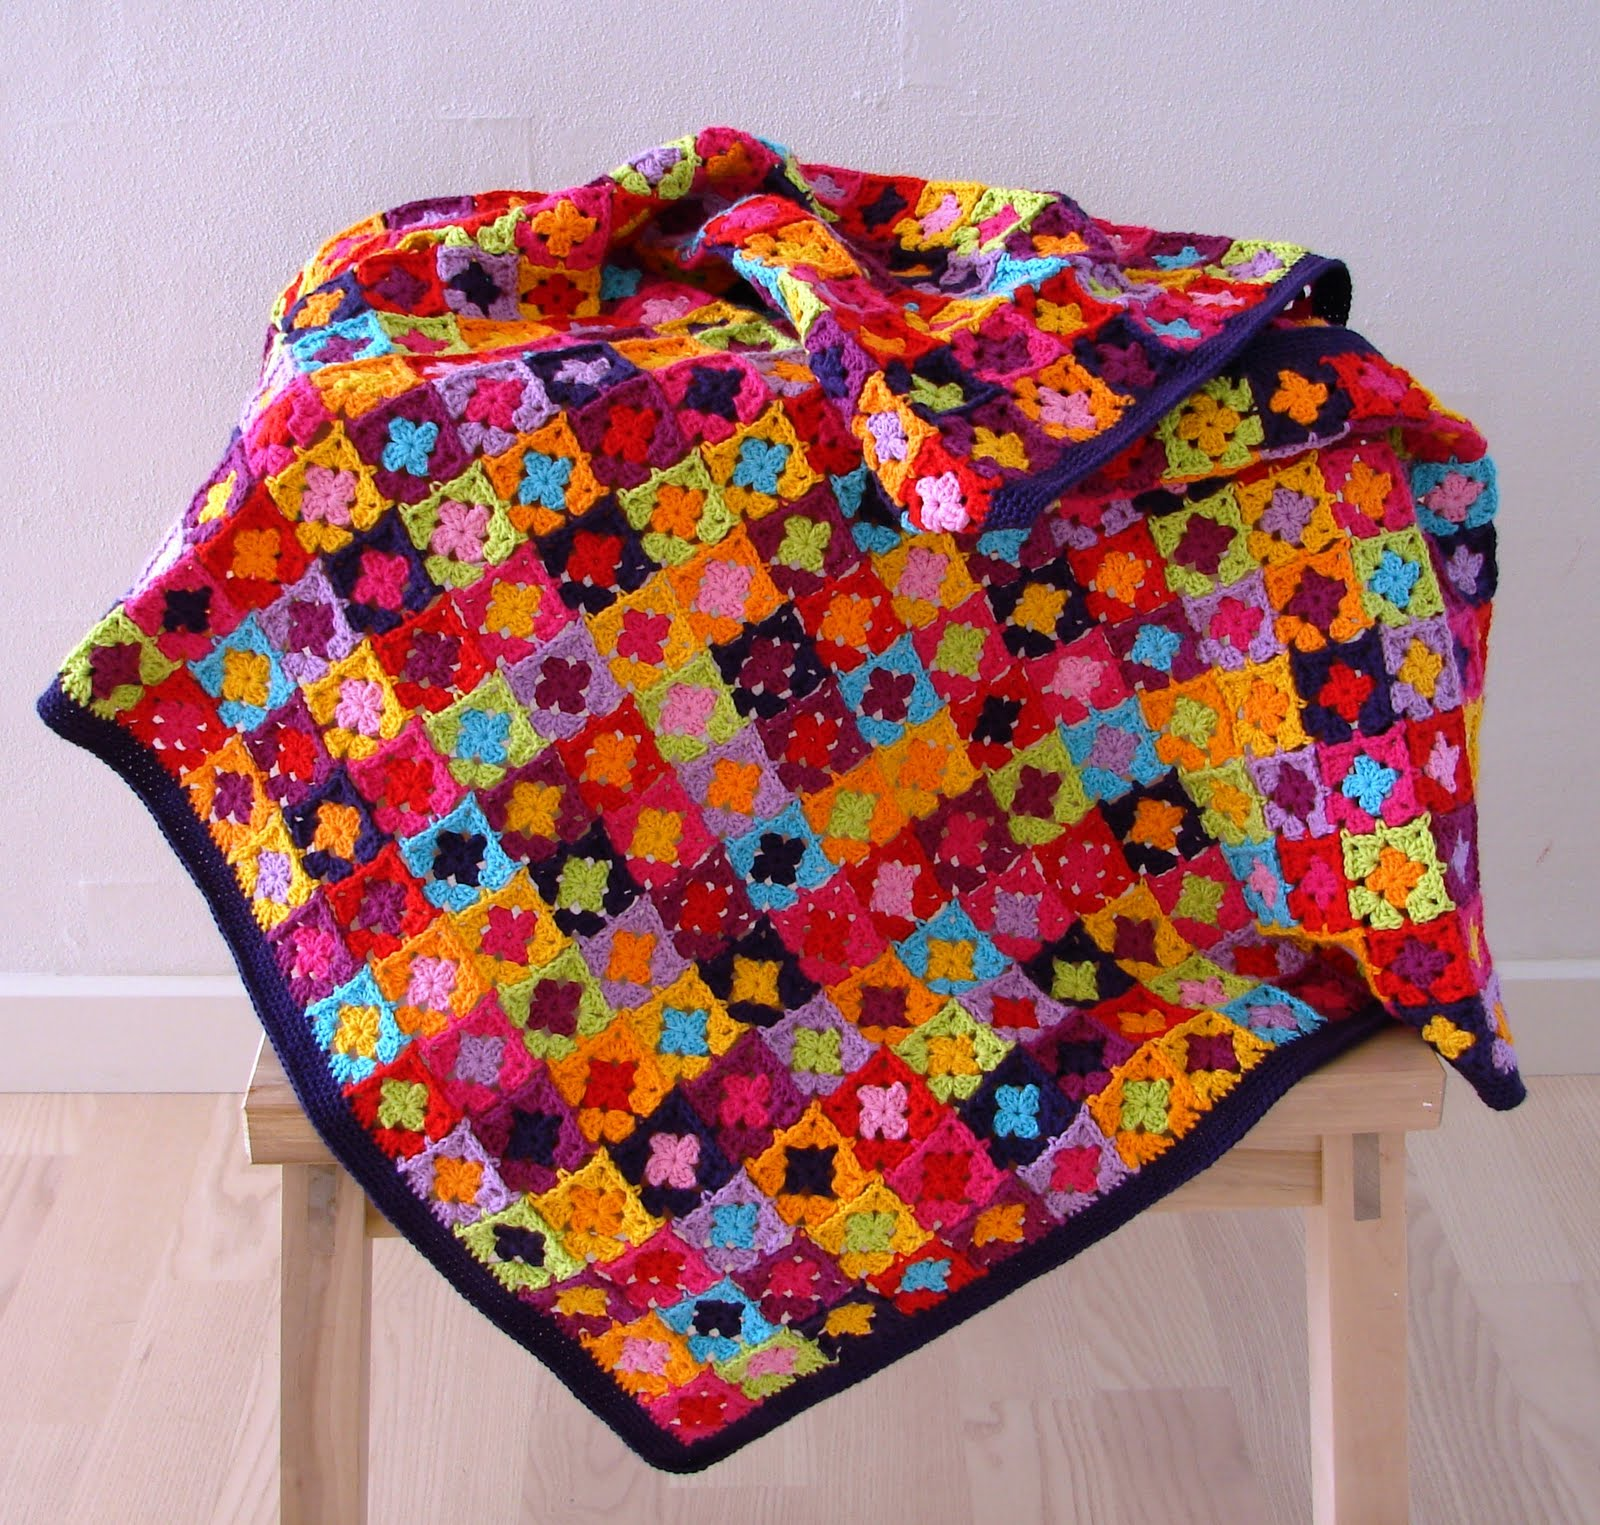 Knitting Patterns Free: crochet baby blanket